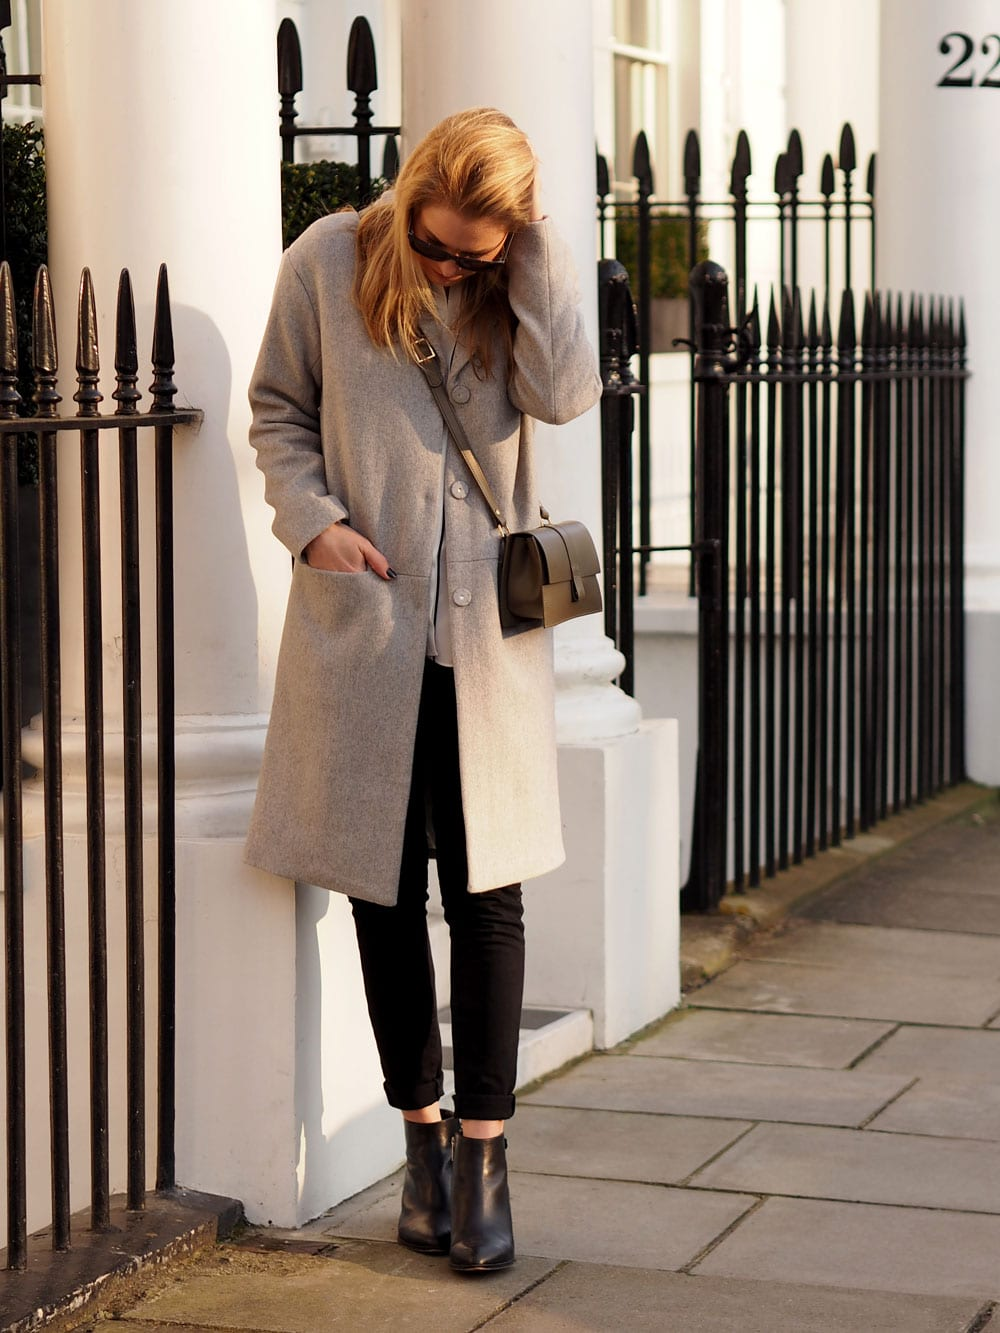 Style&Minimalism | It's Personal | Less Layers, More Light | Second Female Grey Coat, ME+EM Silk Shirt, Paige Skinny Black Jeans, Danielle Foster Charlie Bag, Michael by Michael Kors Black Ankle Boots